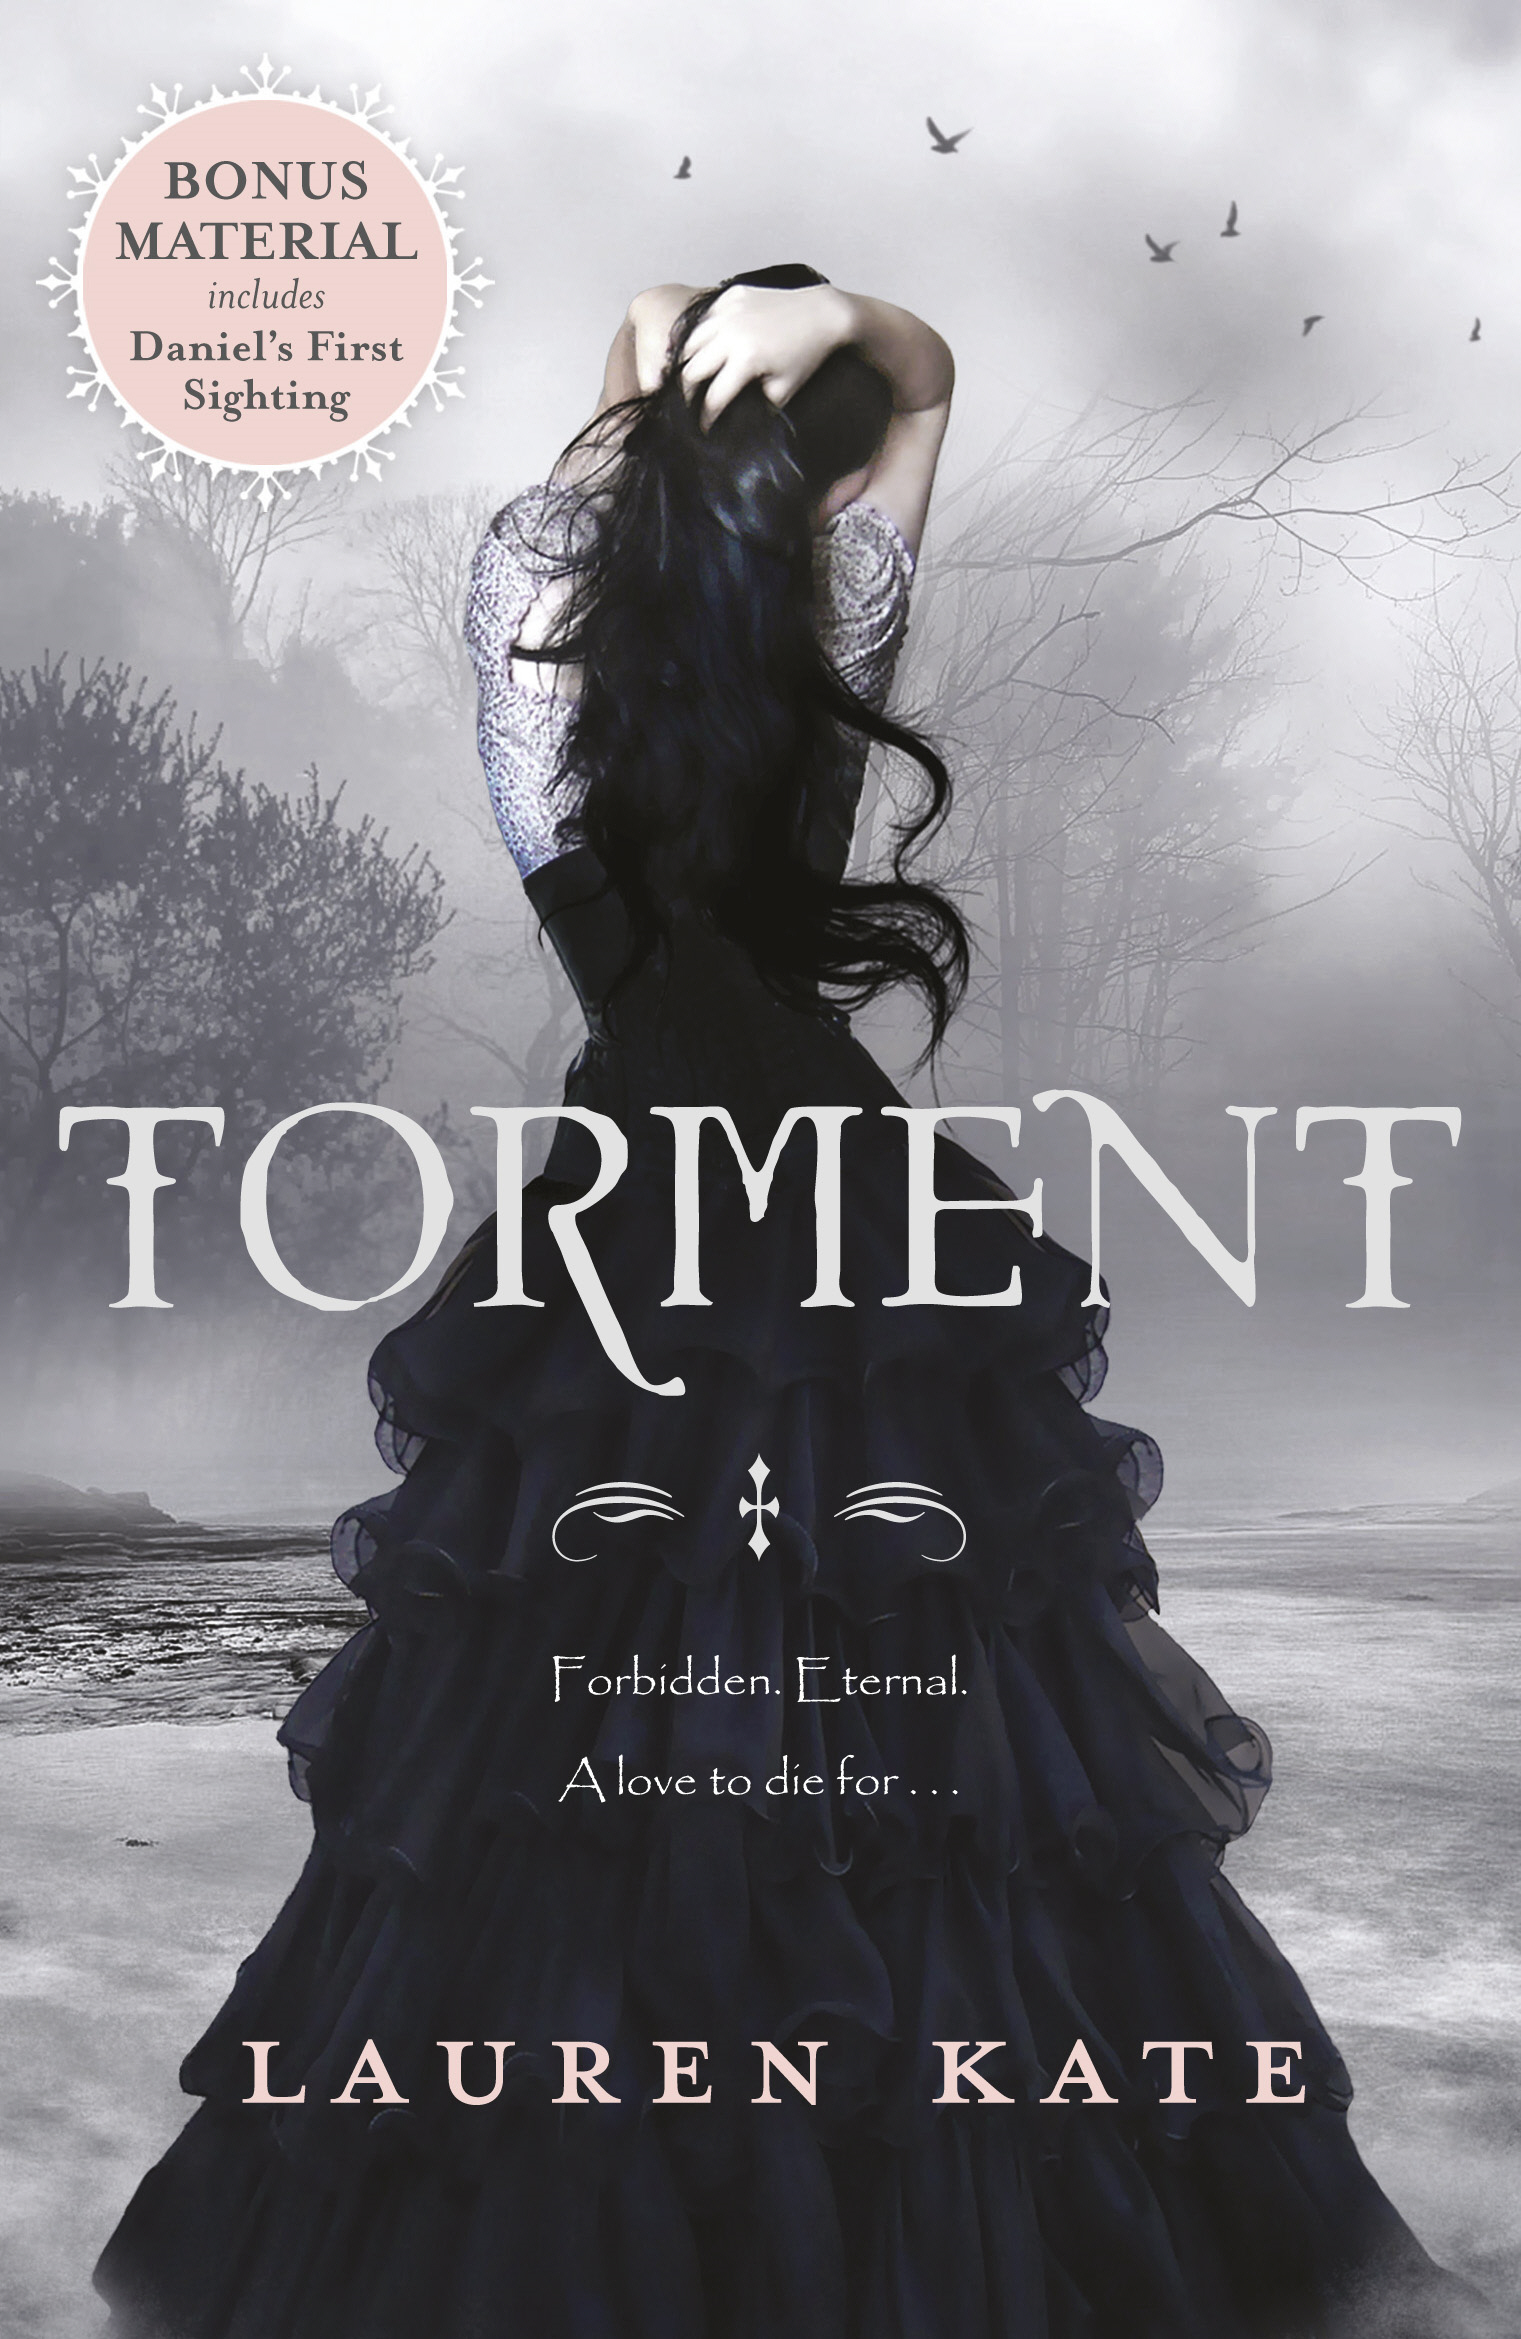 Torment Book 2 of the Fallen Series